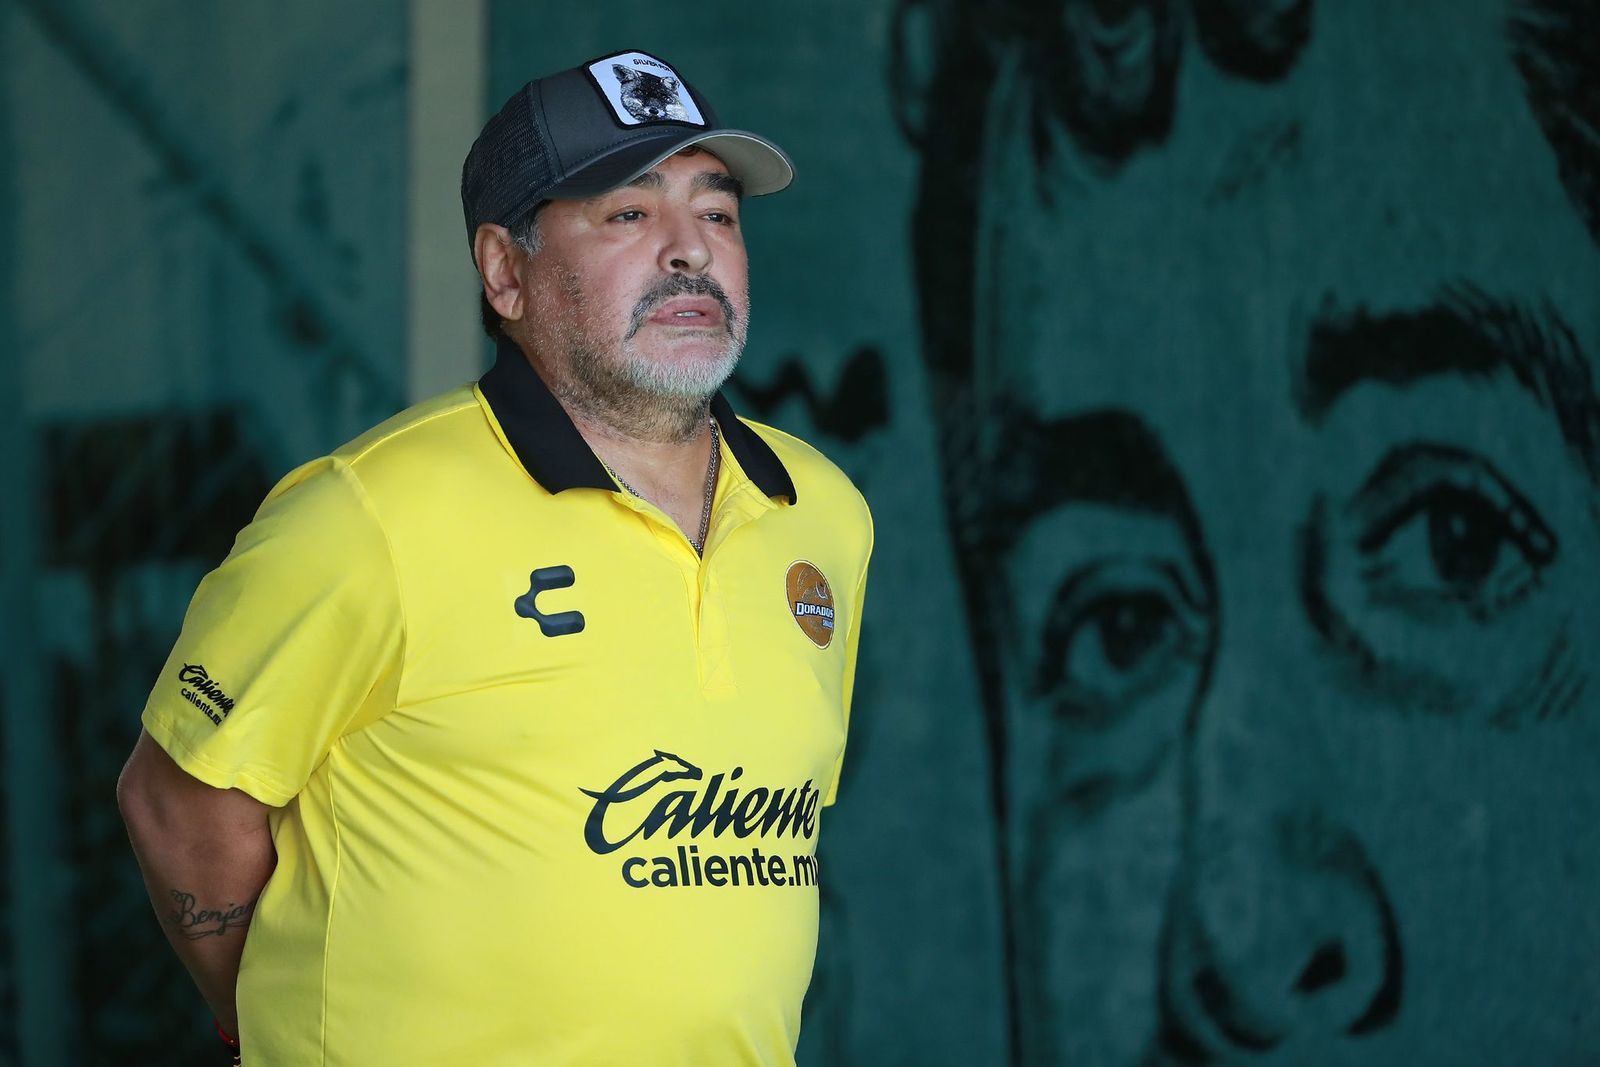 Diego Armando Maradona, coach of Dorados de Sinaloa looked on at the 11th round match between Zacatepec and Dorados as part of the Torneo Apertura 2018 Ascenso MX at Agustin 'Coruco Diaz Stadium on October 06, 2018   Photo: Getty Images